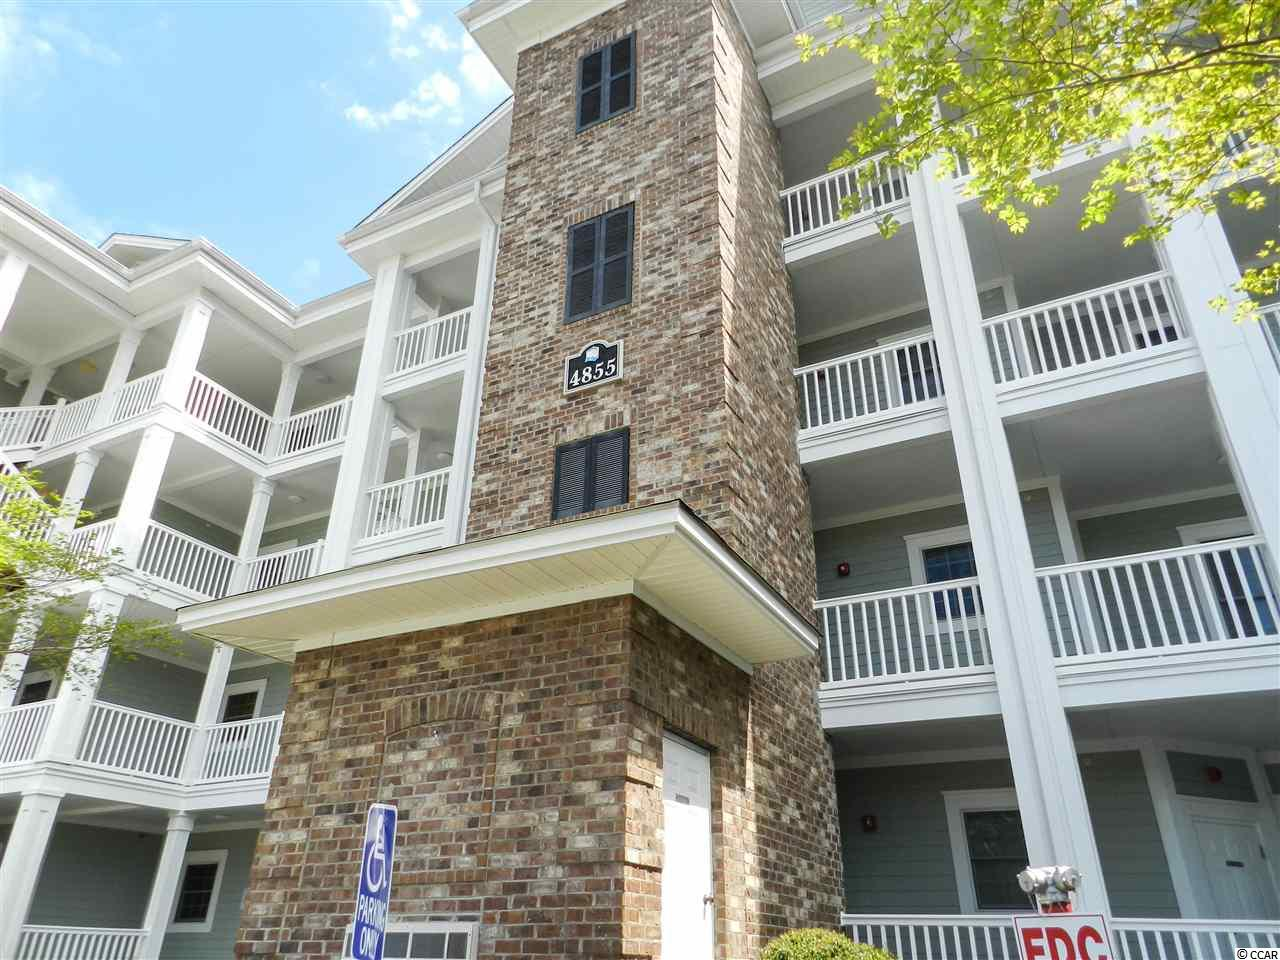 A spacious 3Bed/2Bath END UNIT Condo in Magnolia Pointe - an elevator building in a beautiful, well planned and superbly managed golf course community delivering easy living in Myrtle Beach. Freshly painted walls! Open concept & spacious with a large balcony and panoramic views of the pond, fountain and green space!  All rooms are centered around the large, open kitchen. Relax and enjoy oversized rooms, a split bedroom floorplan, end unit windows and the peaceful balcony.  This unit has been well maintained and would be perfect as a primary residence, short term or long term rental. Multiple pools, walking trails, lush landscaping, palms & flowering shrubs fill the common areas at Magnolia Pointe. So, so close to everything –  Close to Hwy 17 Bypass, Hwy 17 Business, Hwy 31, Hwy 501, Shopping, Dining, Entertainment, Medical, Recreation & a golf cart ride to the beach!